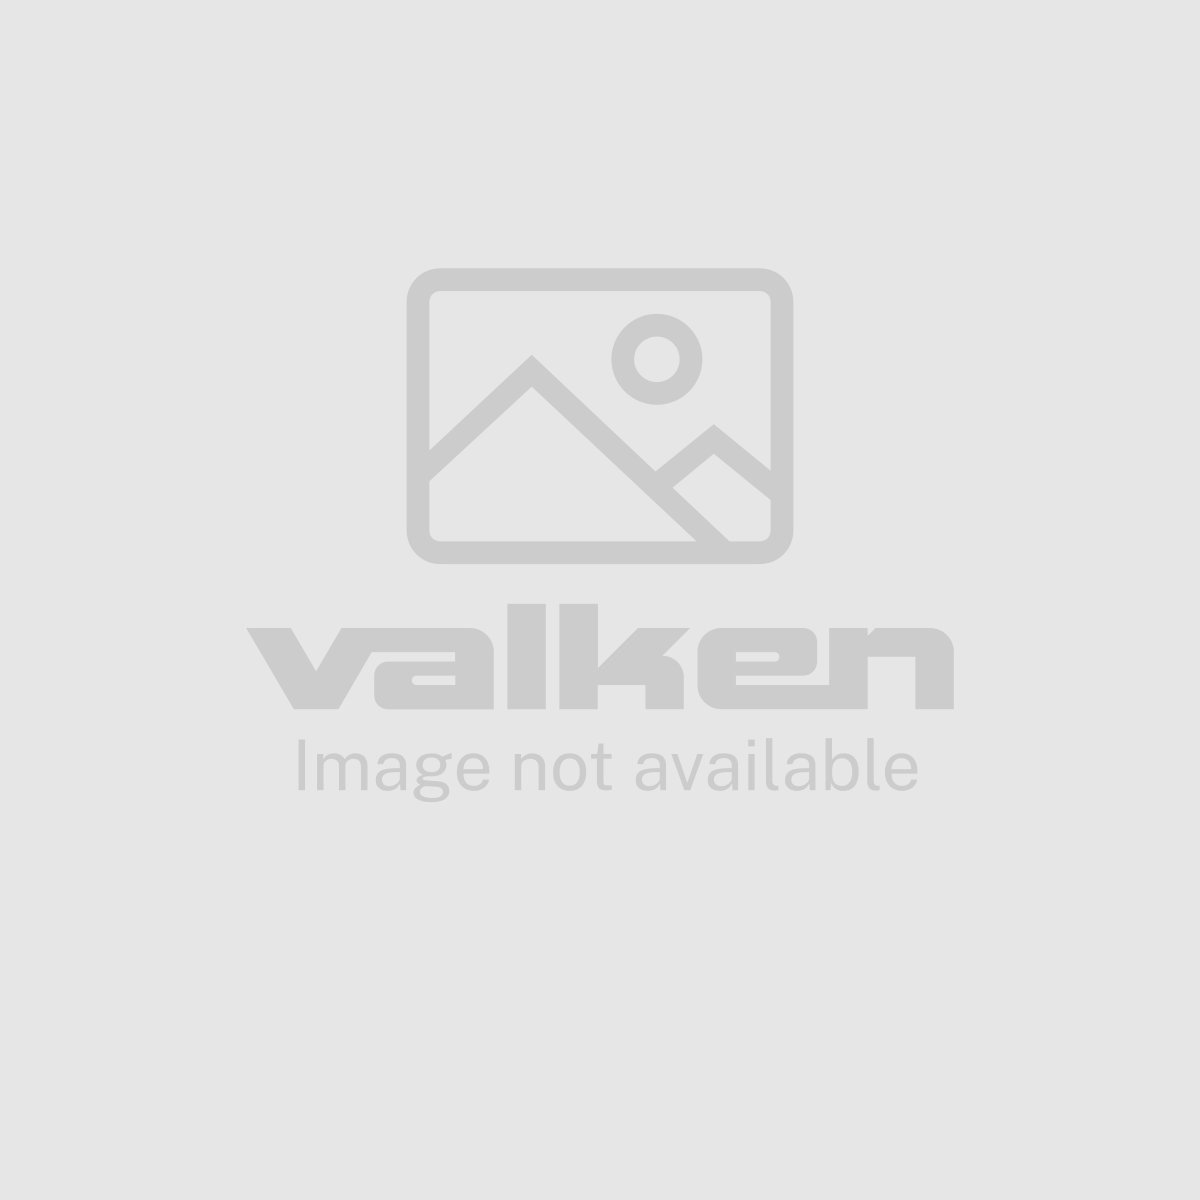 View larger image of Valken Paintball Neck Protector